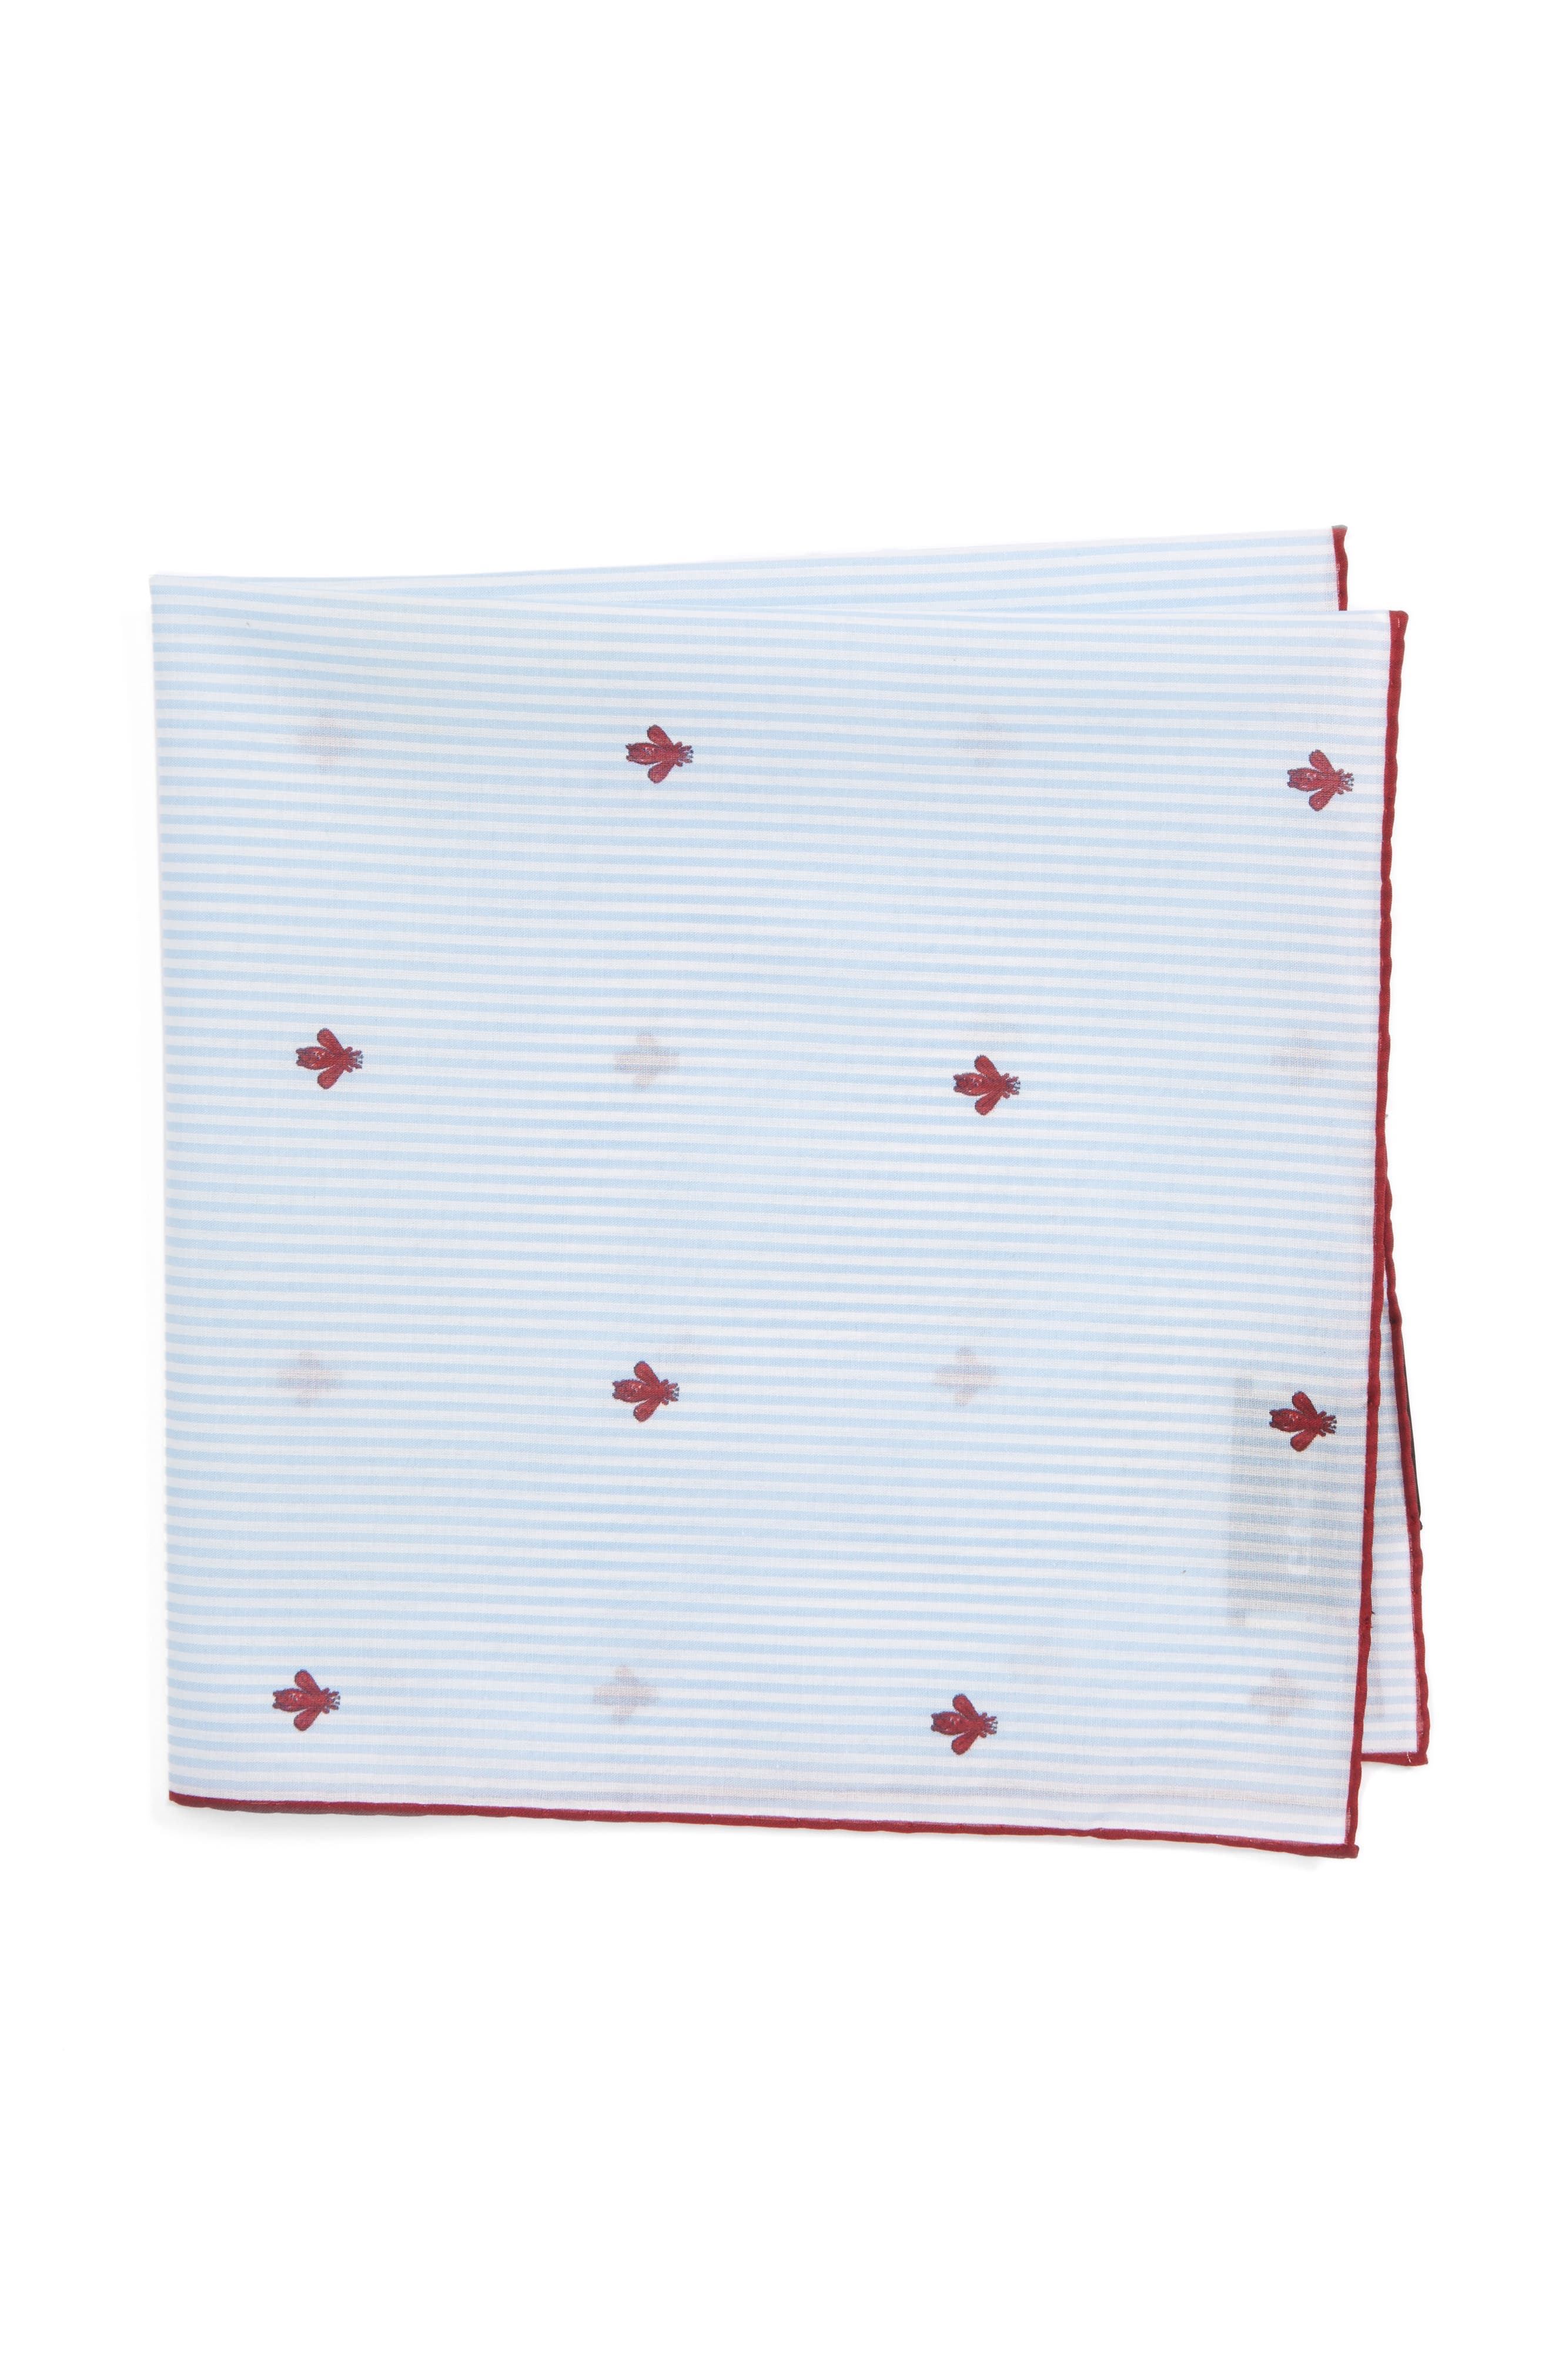 Embroidered Bee Pocket Sqaure,                         Main,                         color, 100